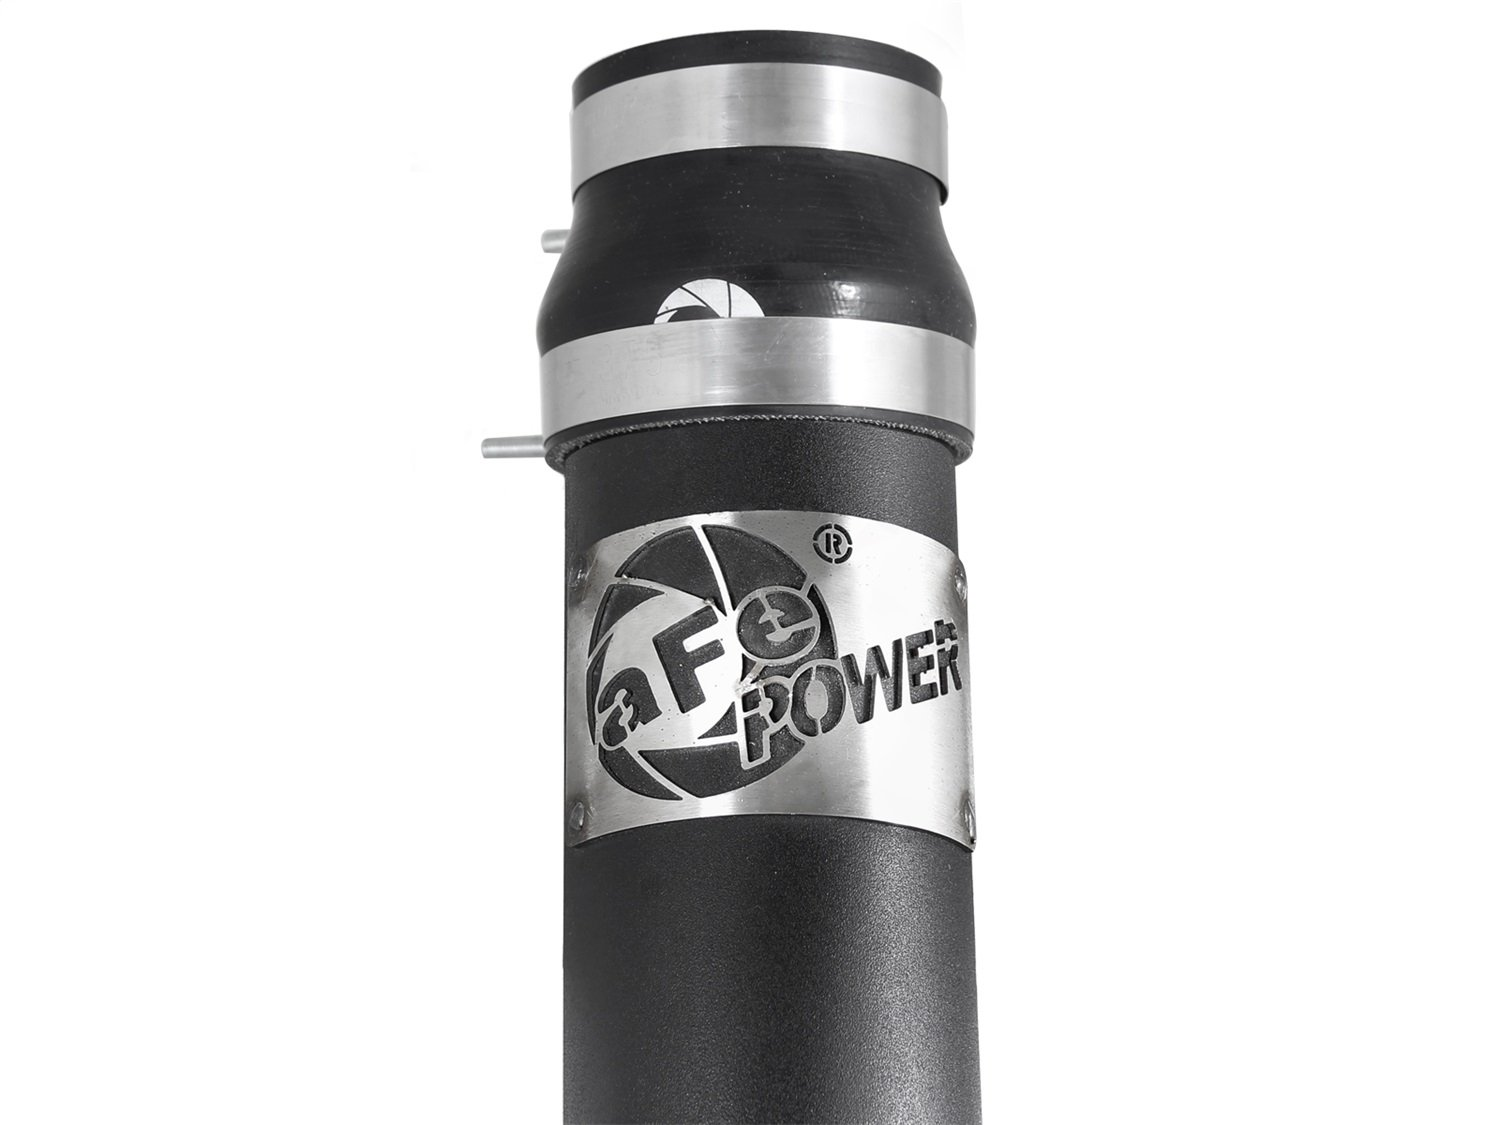 Non-CARB Compliant aFe Power 46-20067-B BladeRunner Black 3-1//2 Intercooler Cold Side Tube with Couplings and Clamps for Dodge Diesel Trucks L6-5.9L